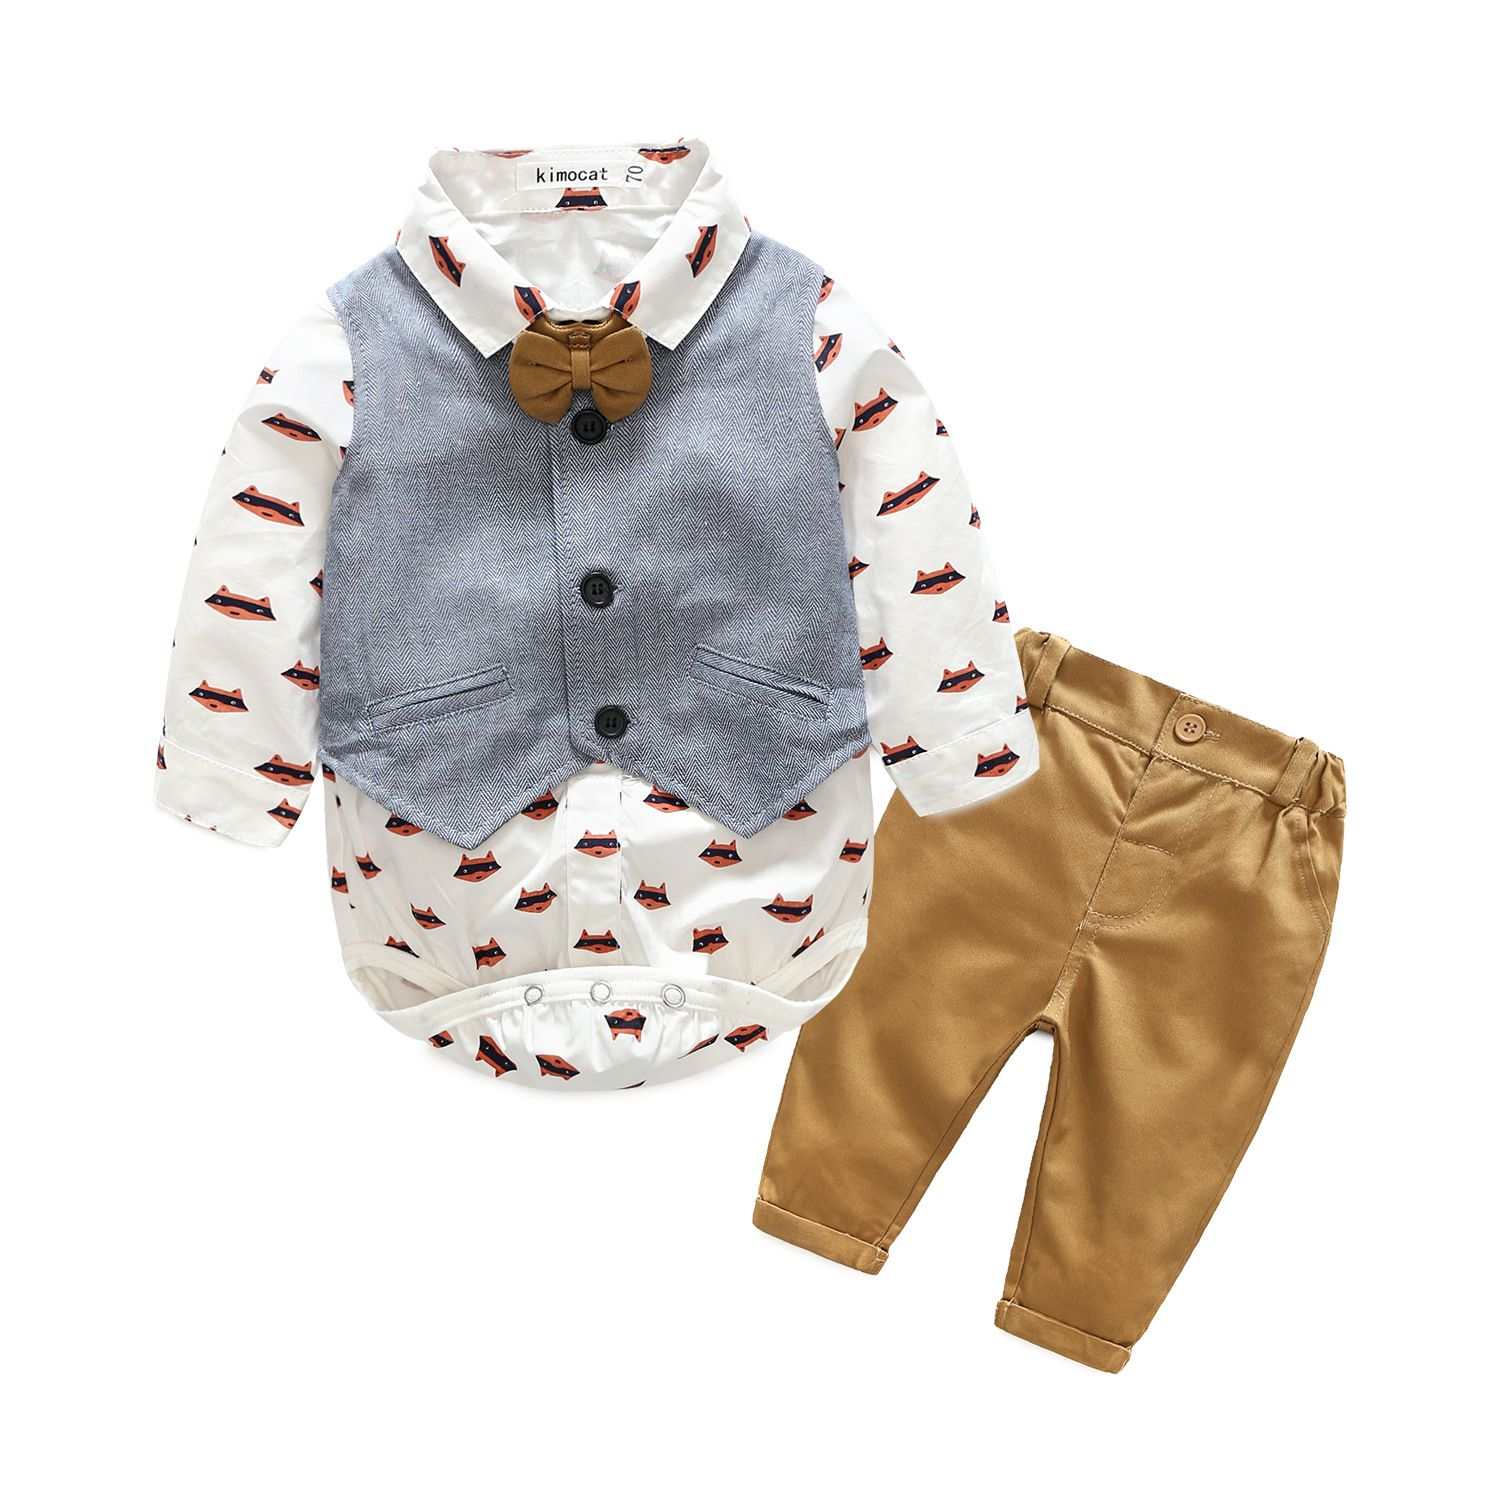 2 piece Printed Fox Top Solid Vest and Pants for Baby Boy